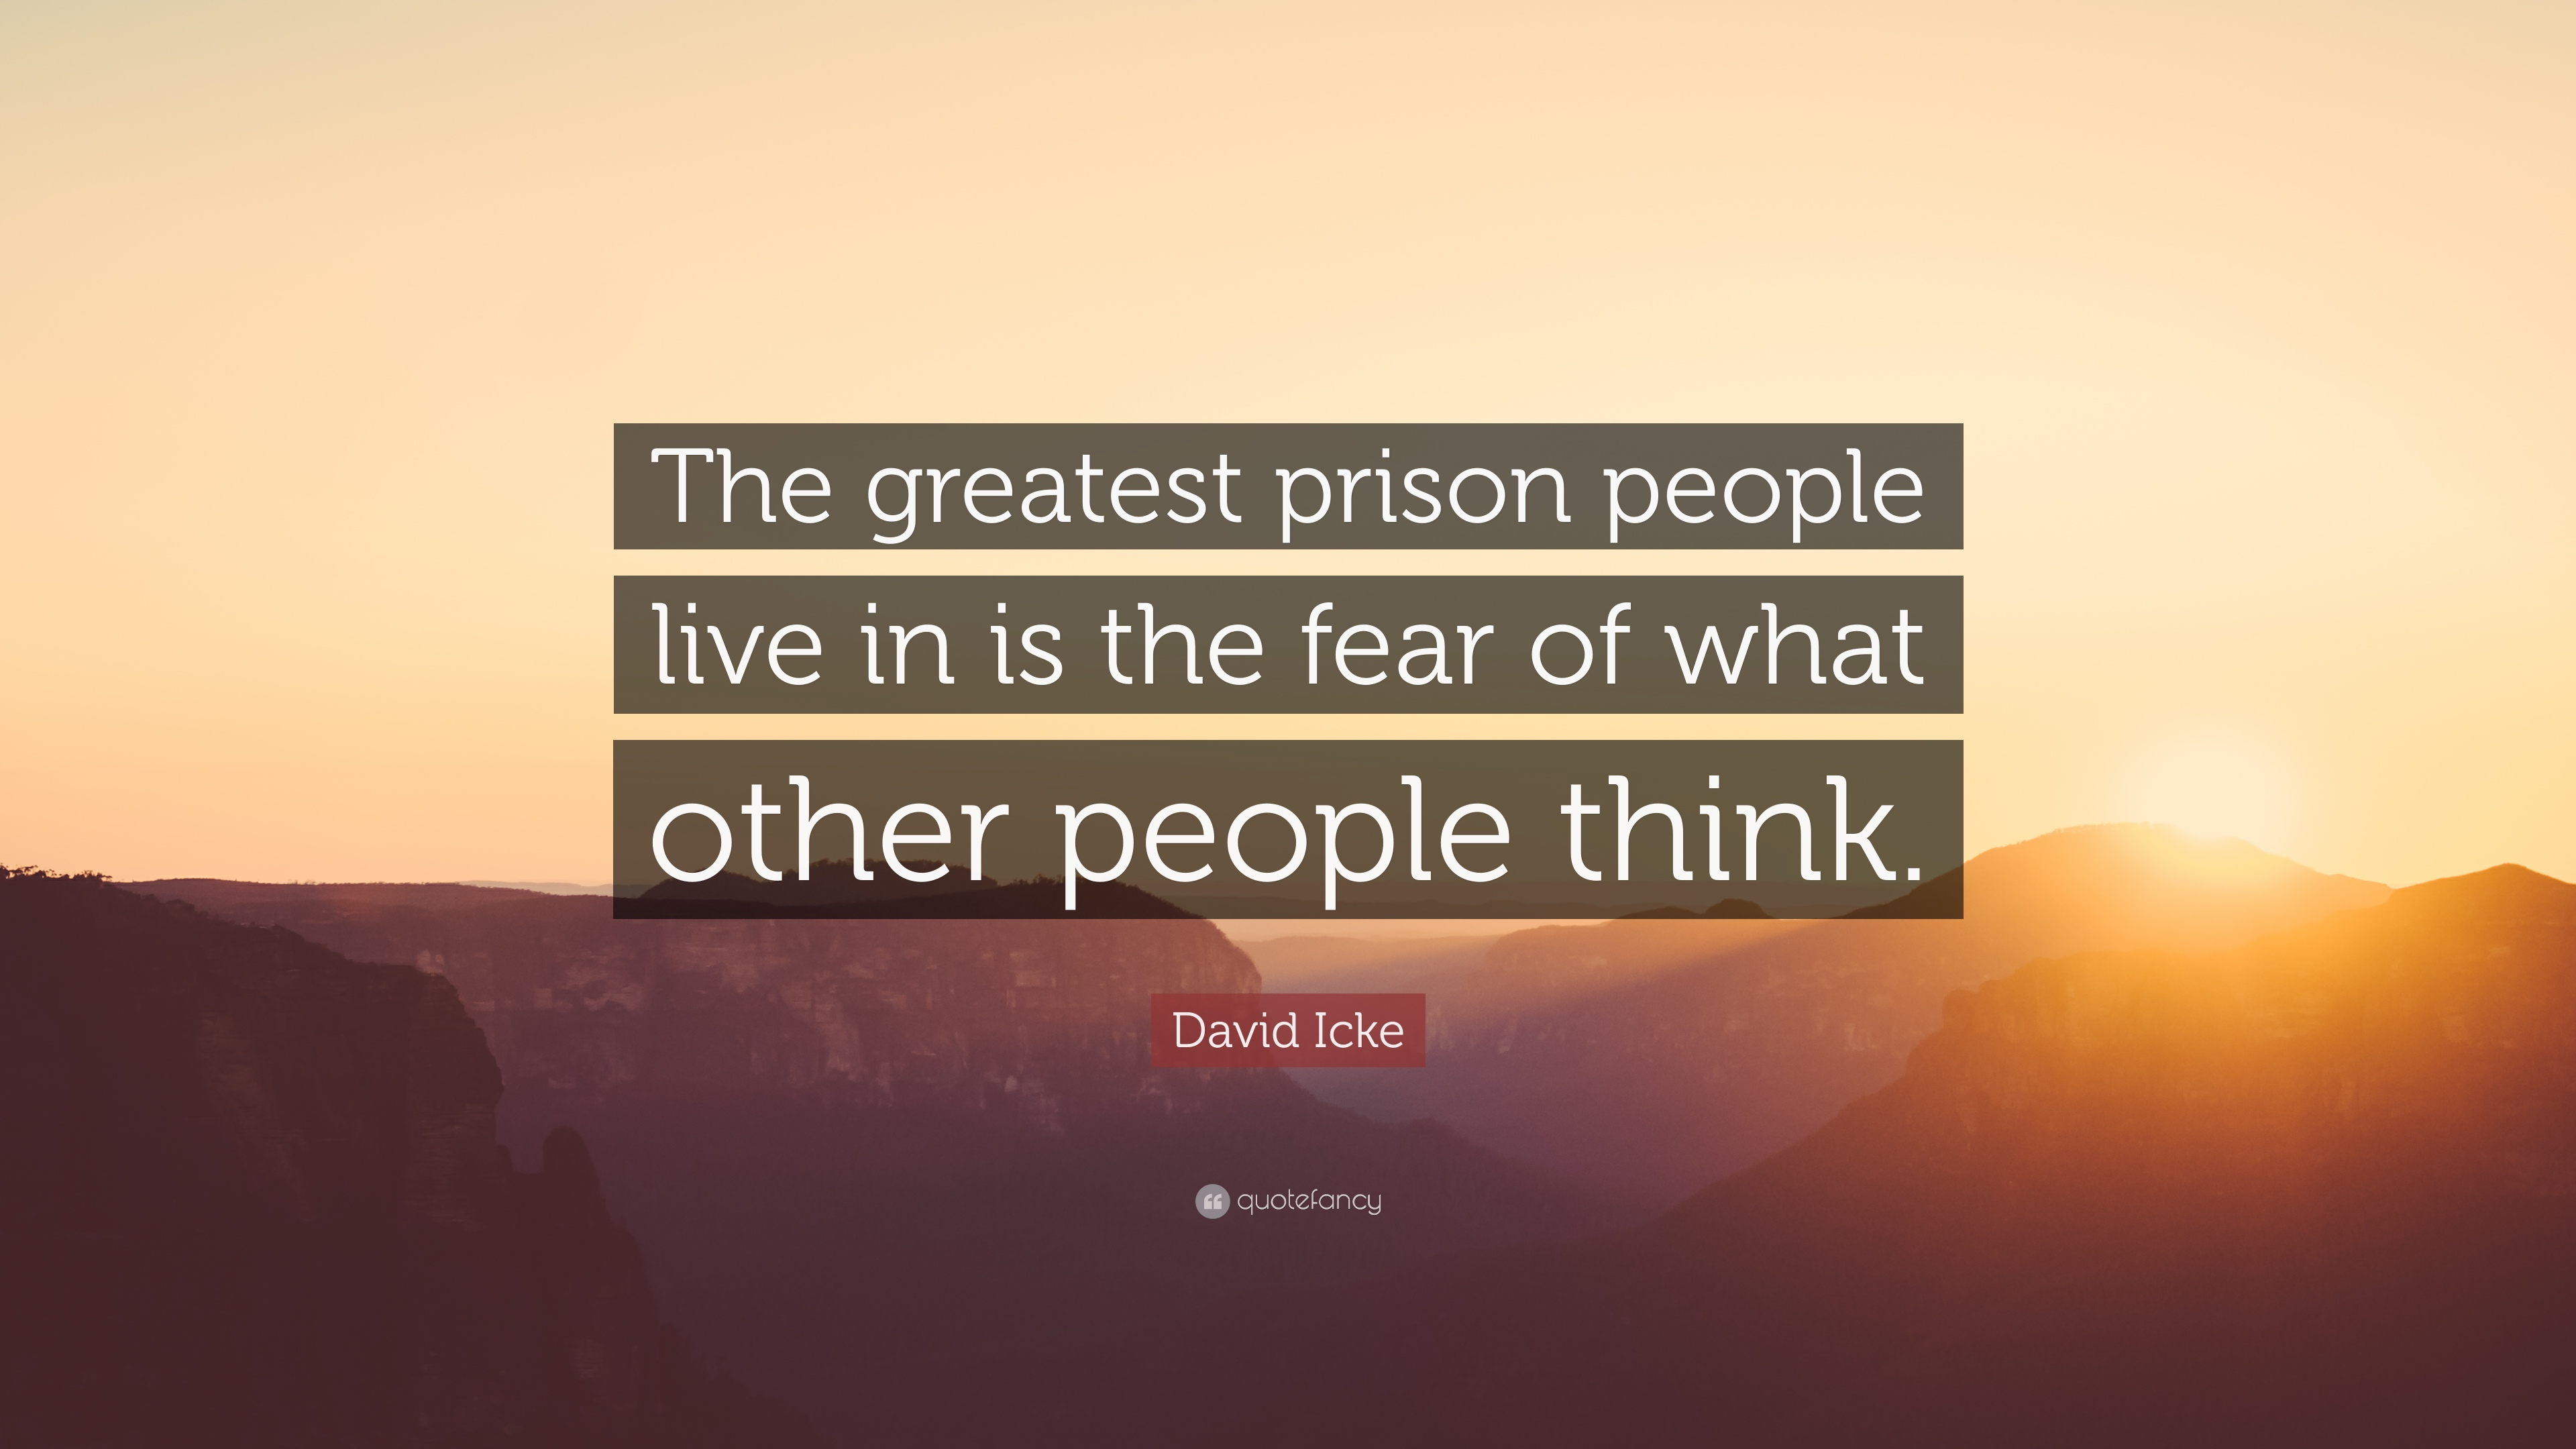 Delicieux David Icke Quote: U201cThe Greatest Prison People Live In Is The Fear Of What